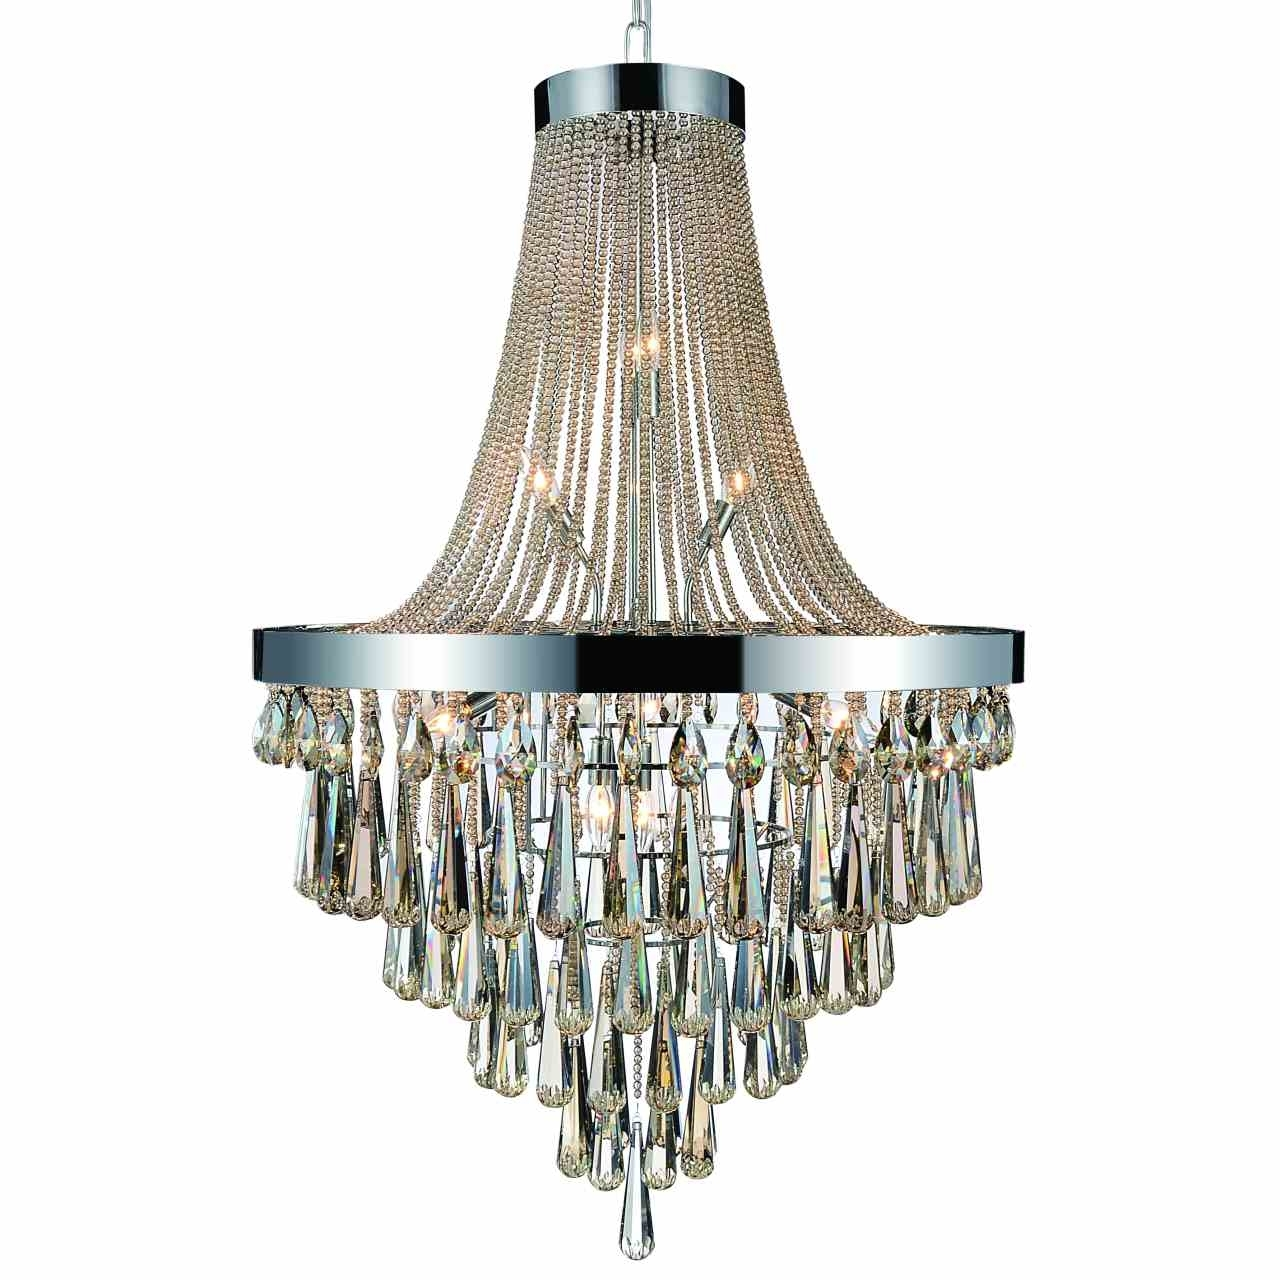 2019 Brizzo Lighting Stores (View 9 of 20)